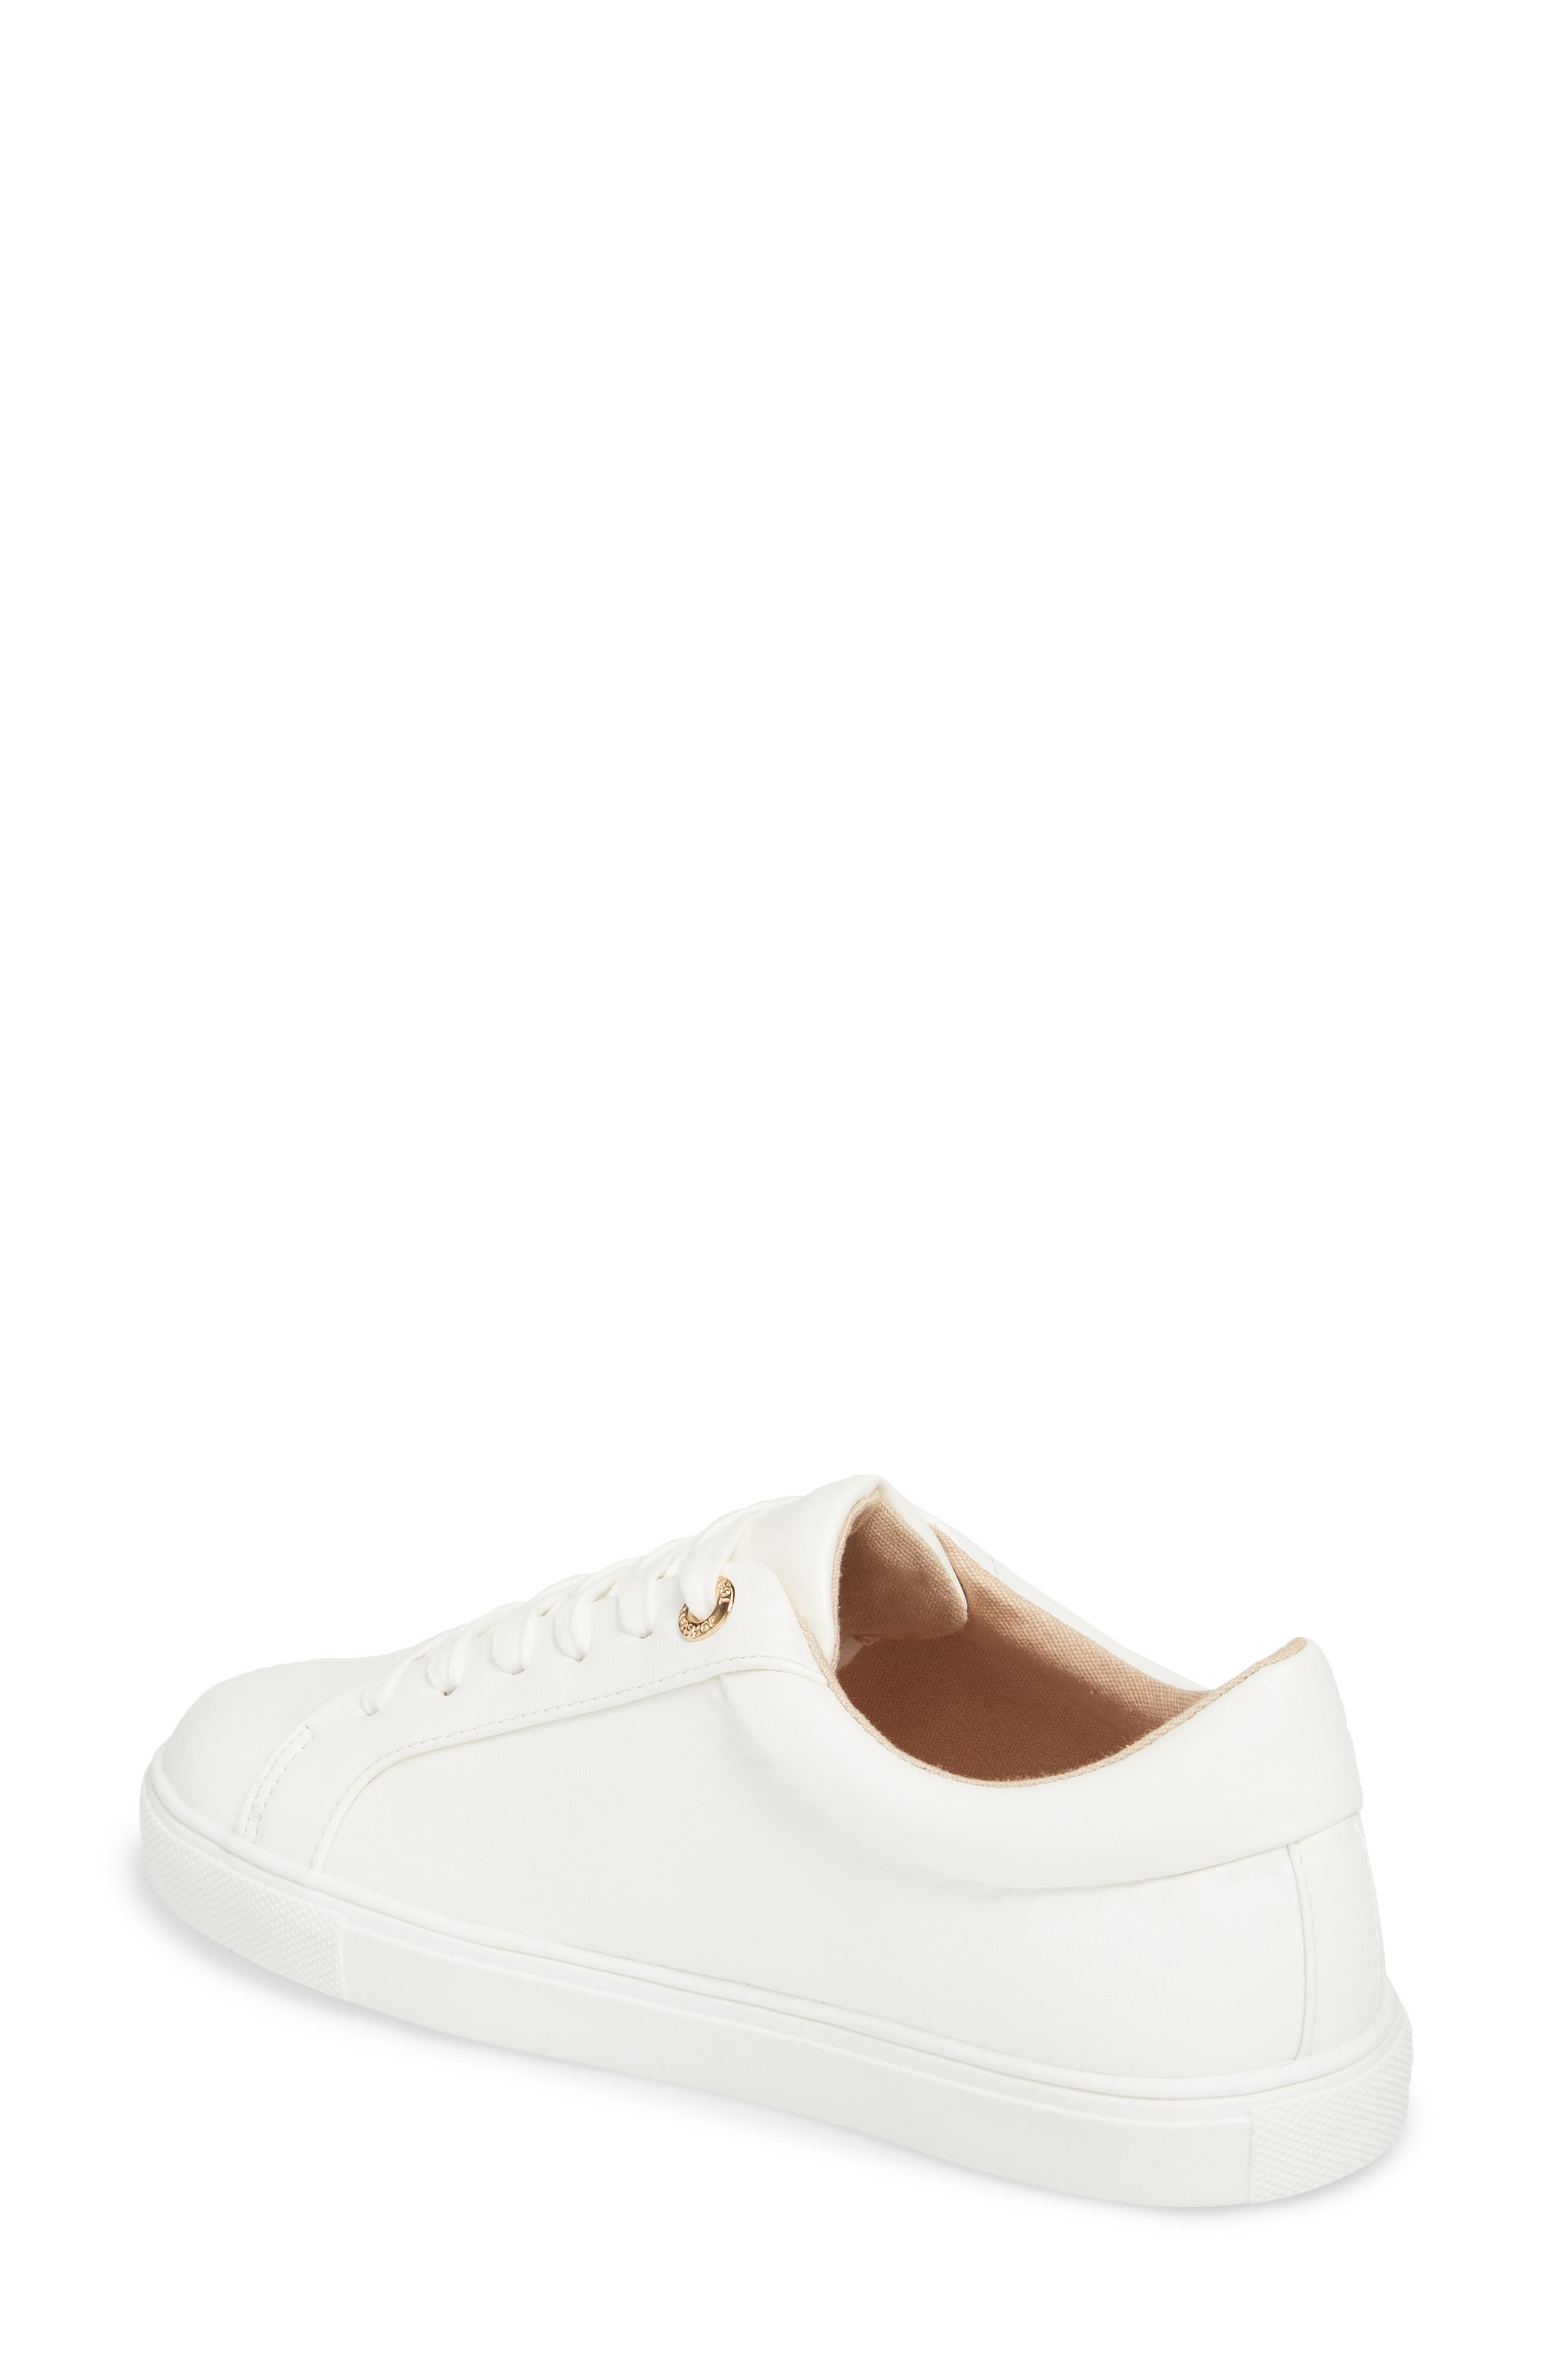 Cookie Low Top Sneaker,                             Alternate thumbnail 2, color,                             White